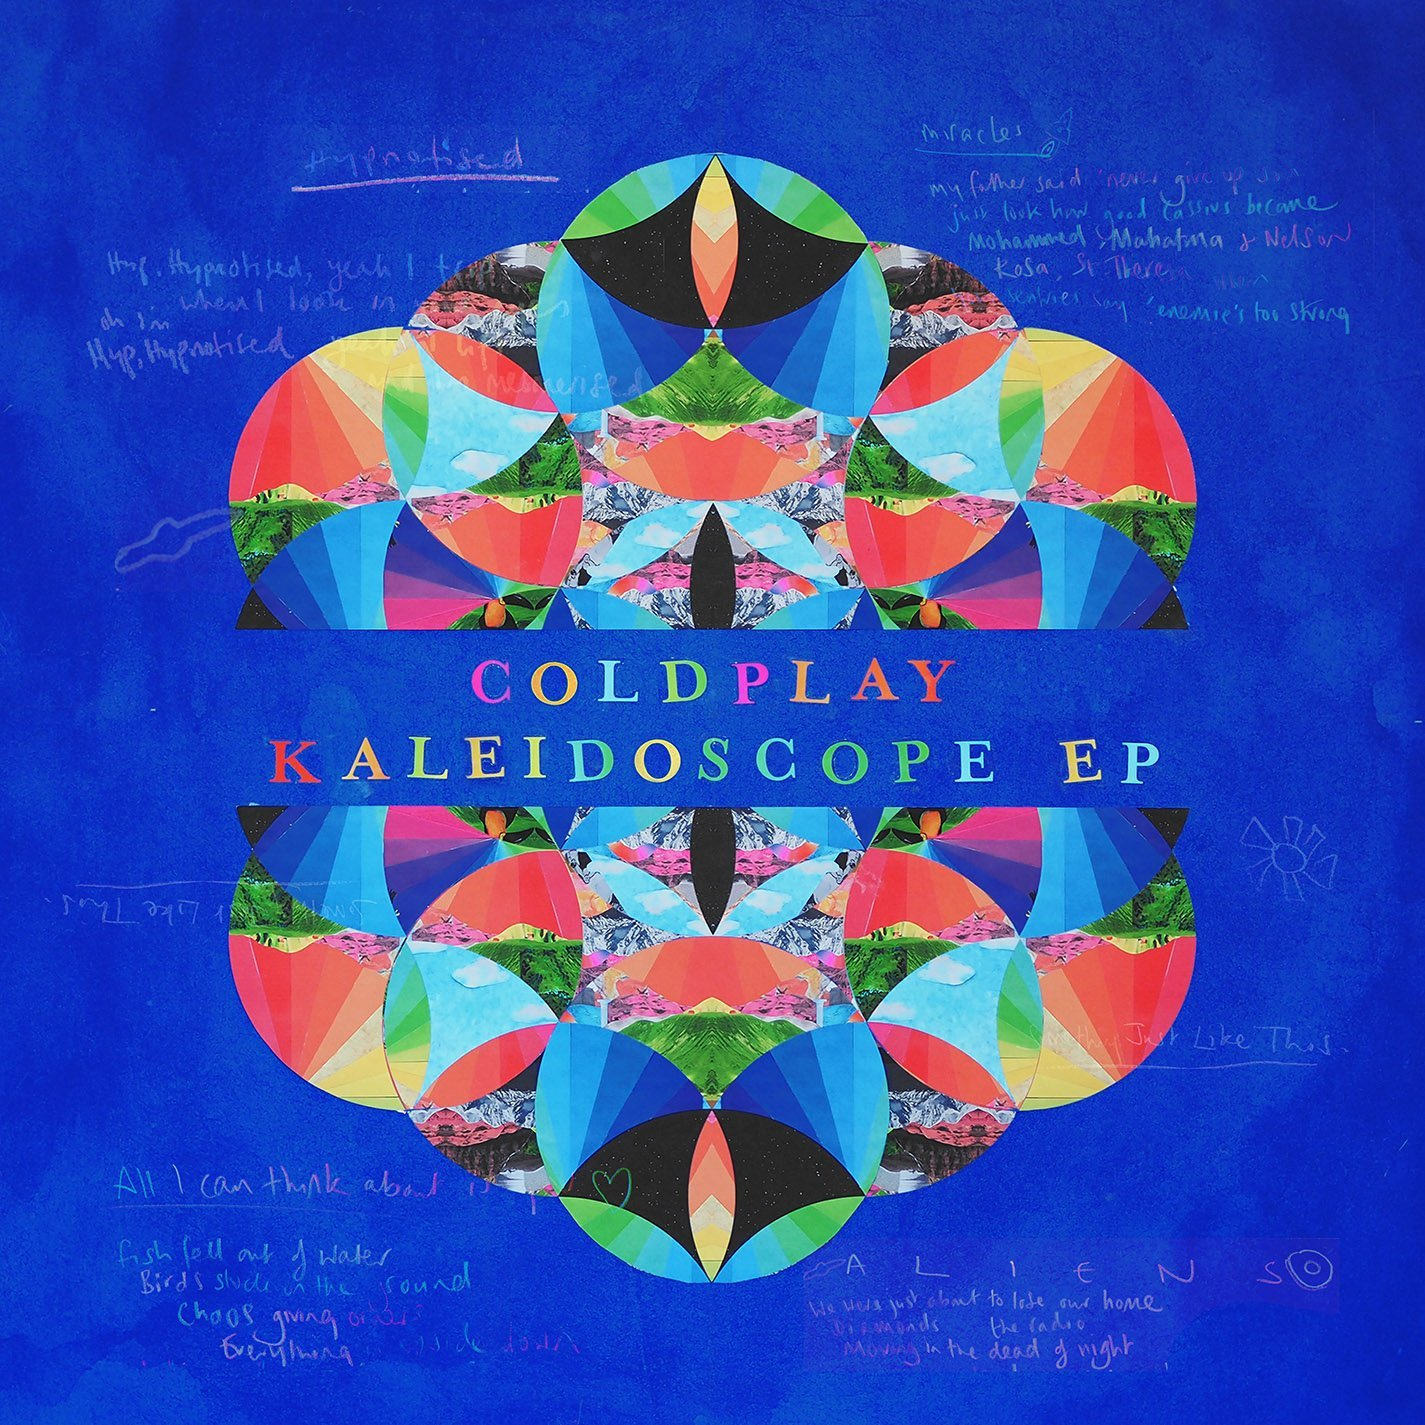 Coldplay, Kaleidoscope EP | Album Review